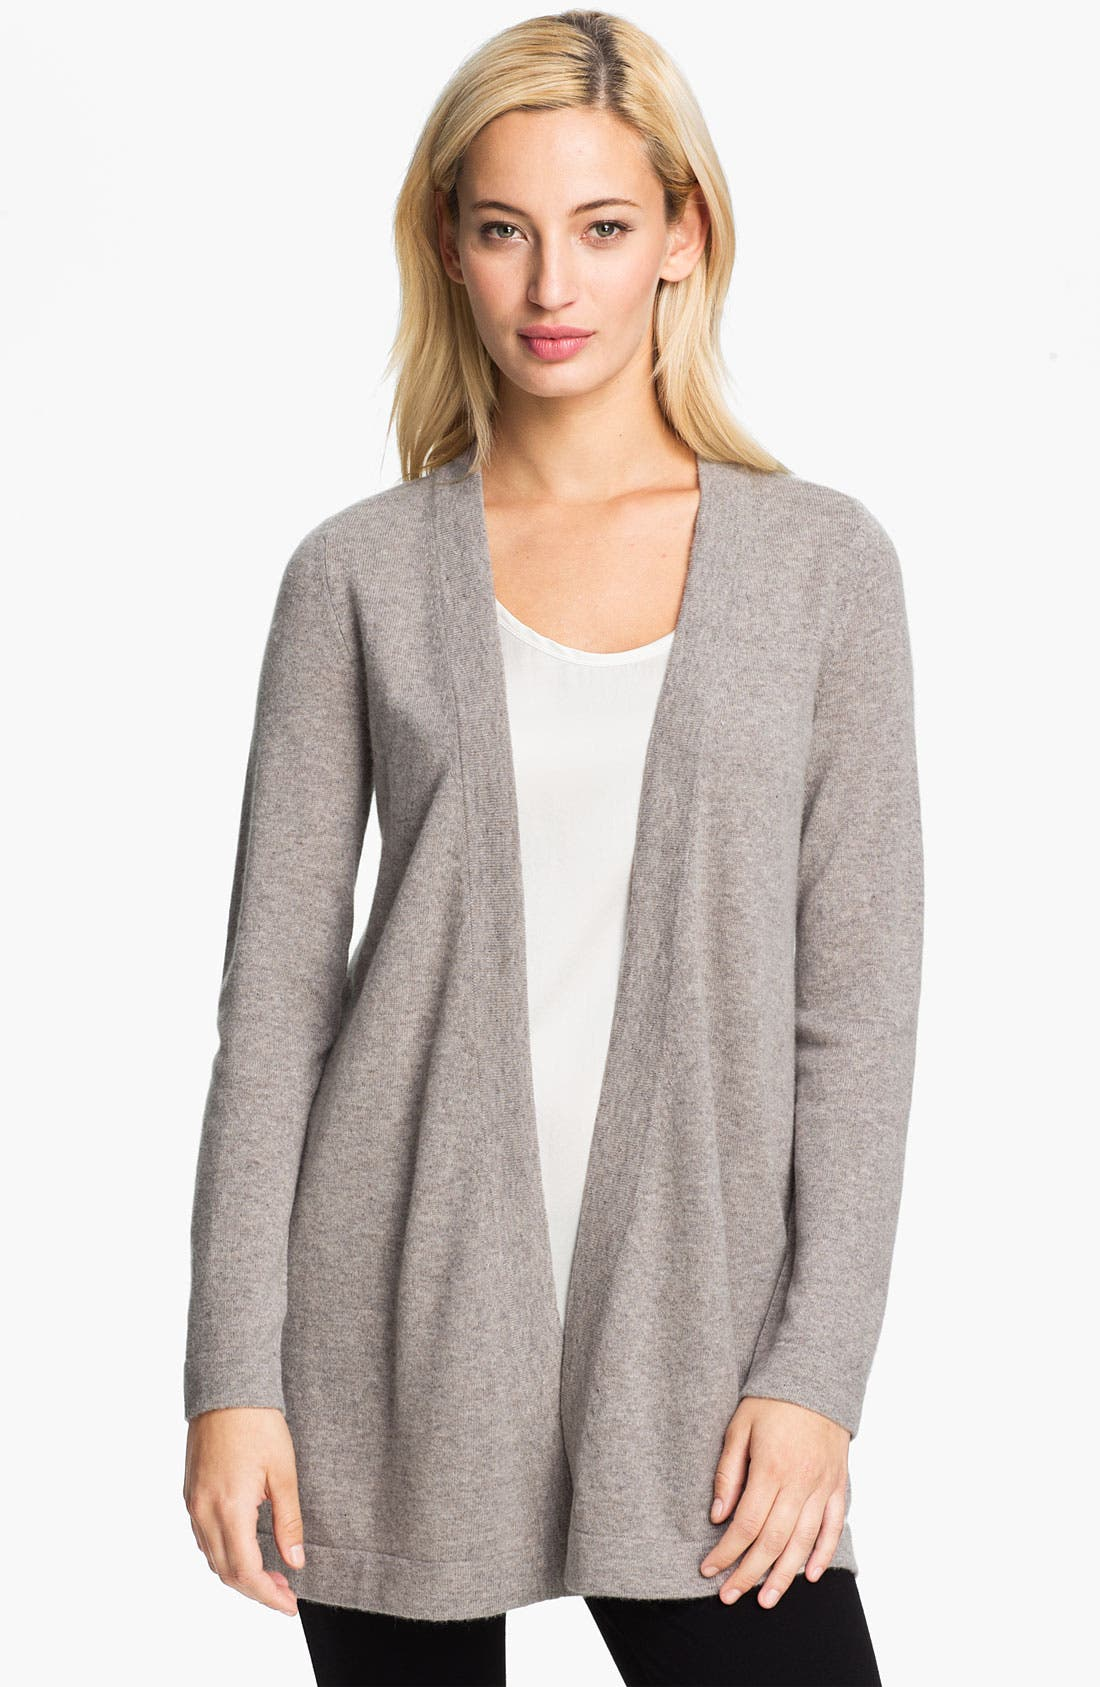 Main Image - Christopher Fischer 'Carolyn' Cashmere Cardigan (Online Exclusive)